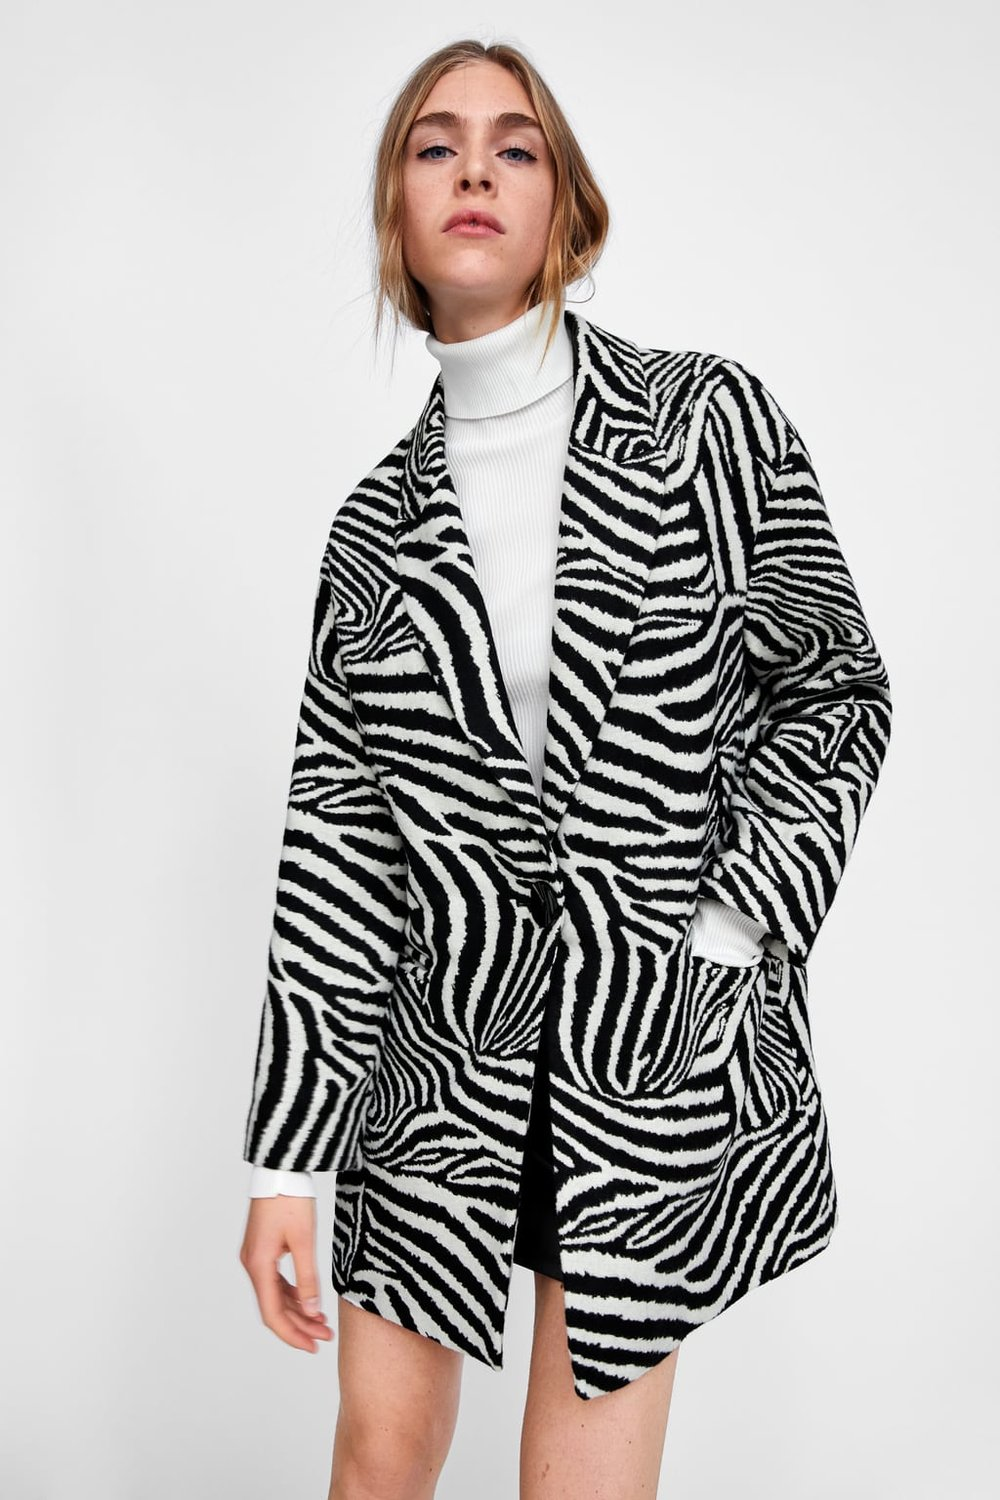 41b89b1c56d6 This Zara zebra coat is also a great versatile coat for going into spring  next year